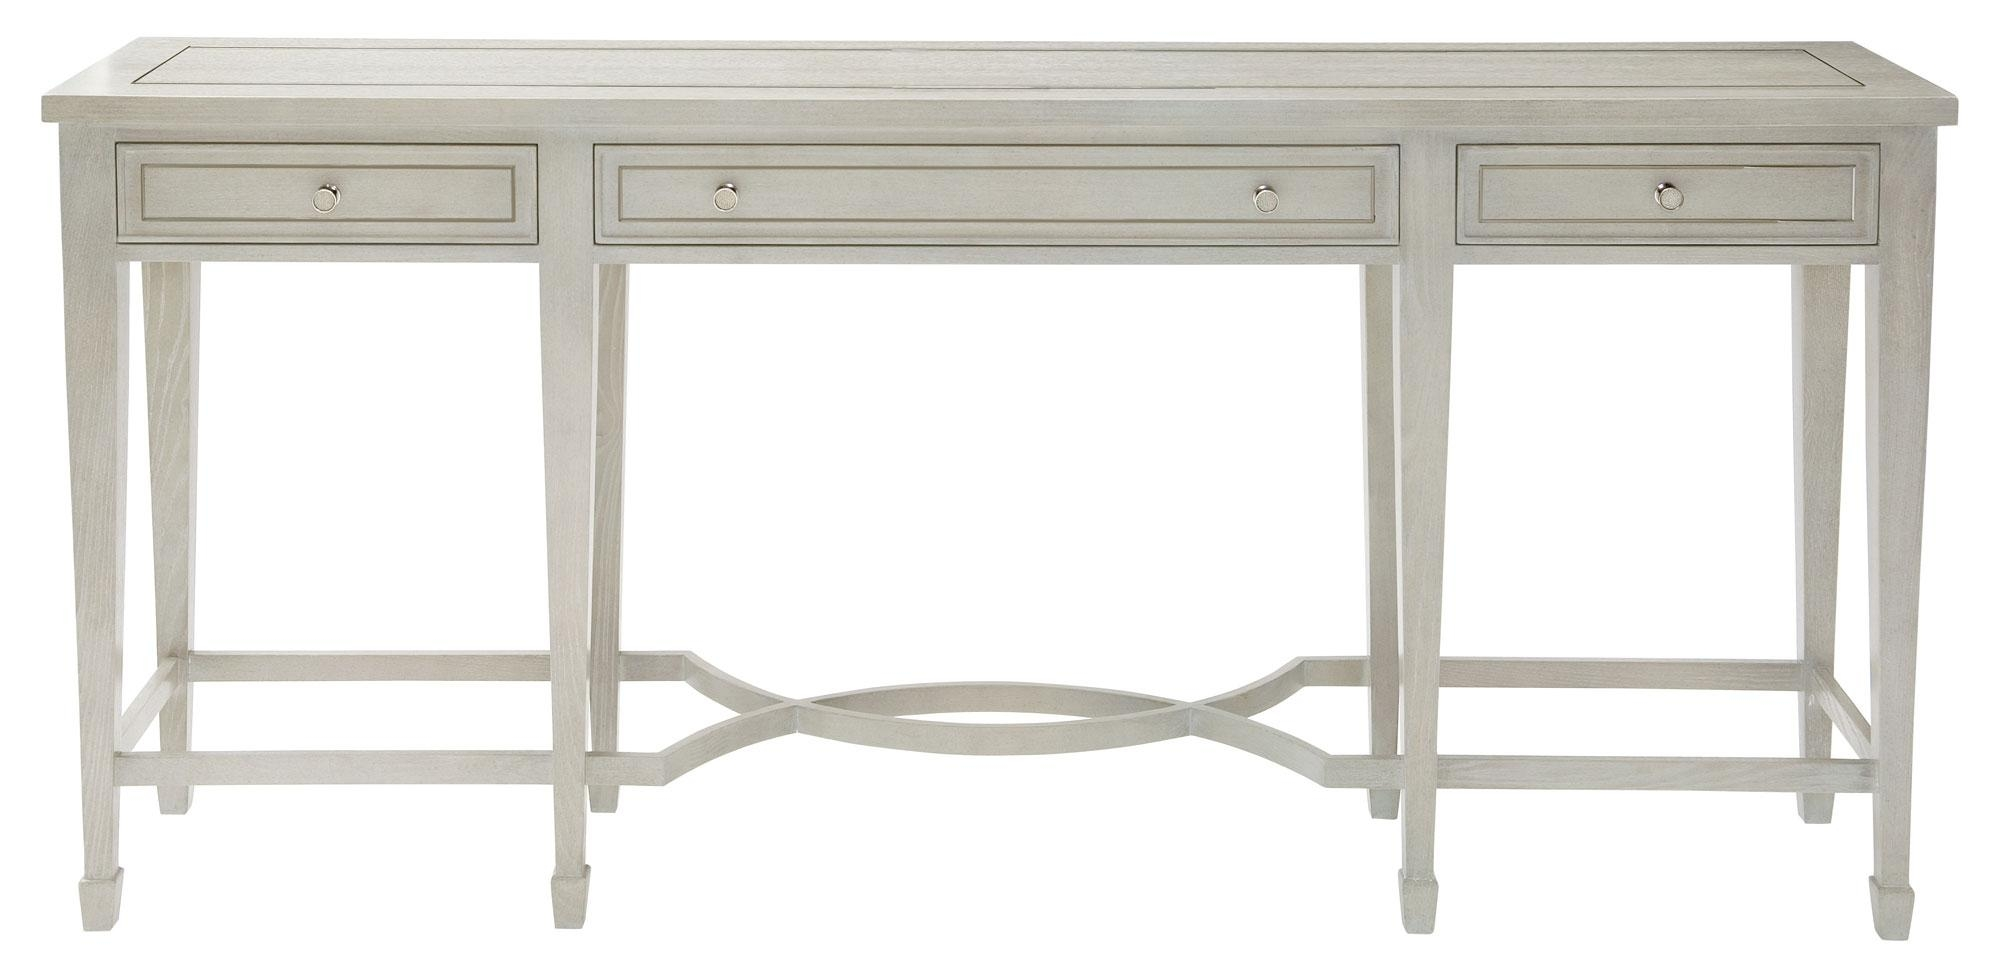 Console Table | Bernhardt Intended For Bernhardt Console Tables (Image 7 of 20)